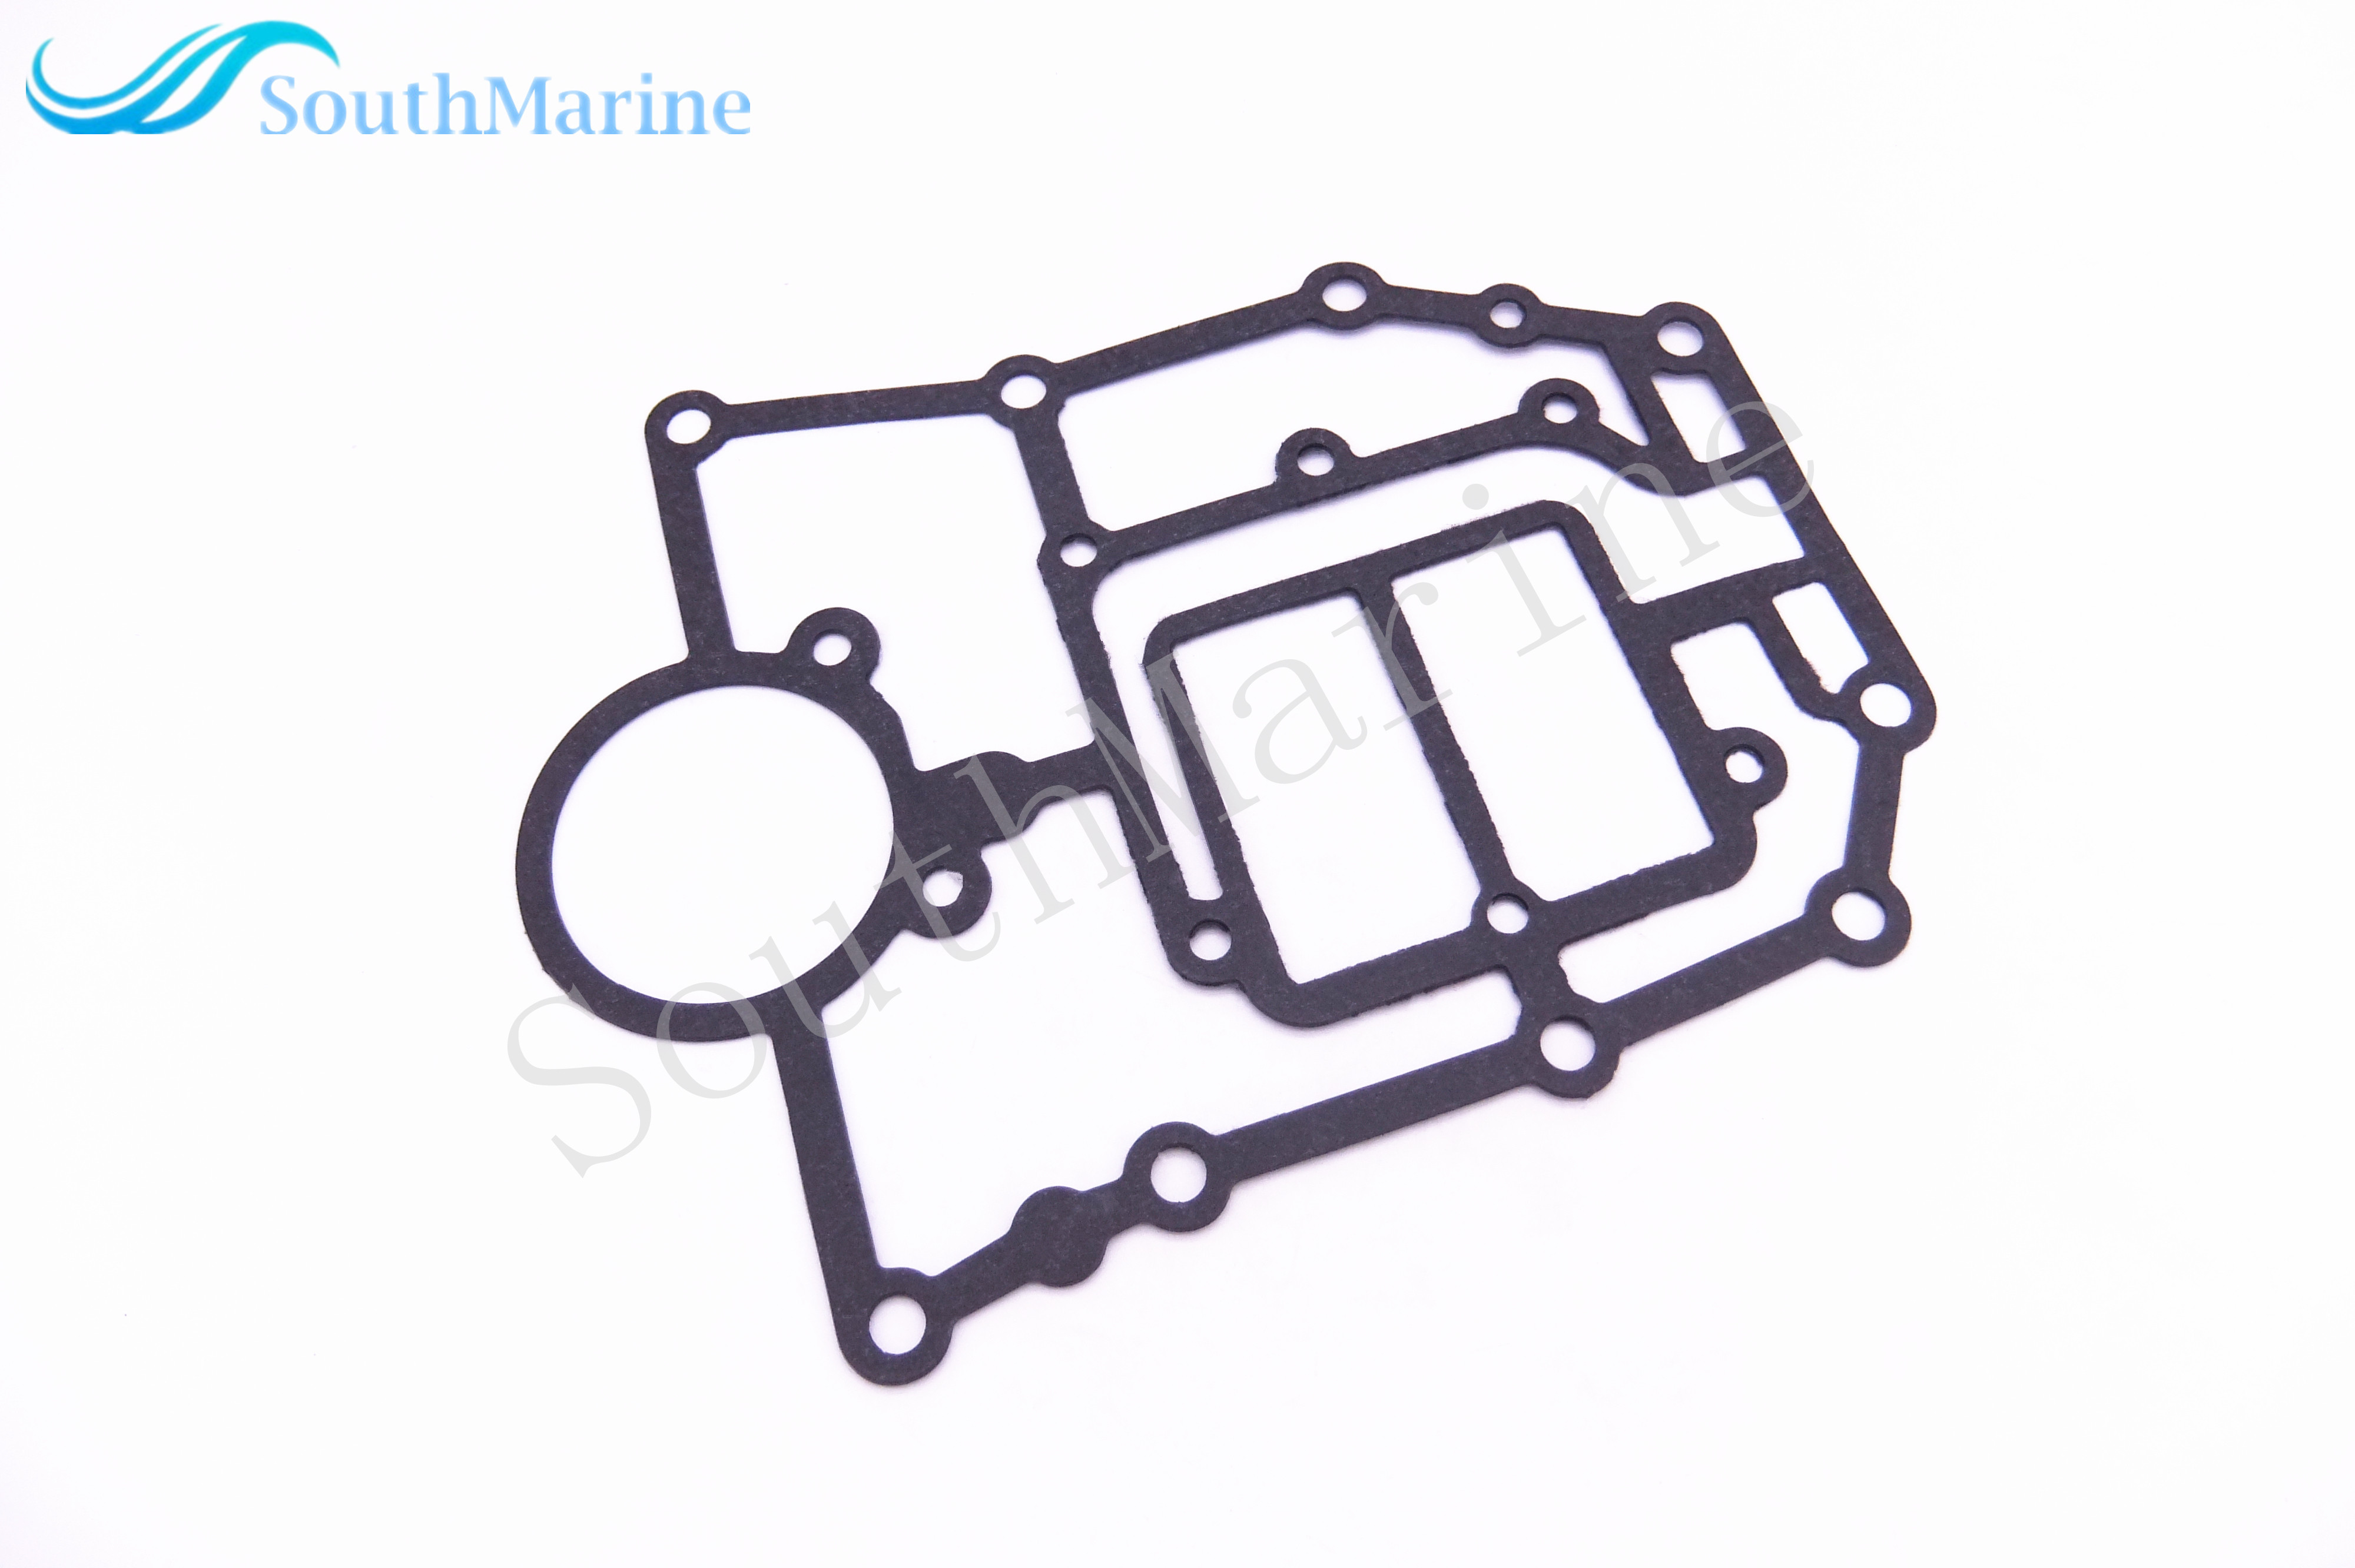 medium resolution of 11433 94412 boat motor gasket under oil seal for suzuki 40hp dt40 outboard engine 11433 94411 in boat engine from automobiles motorcycles on